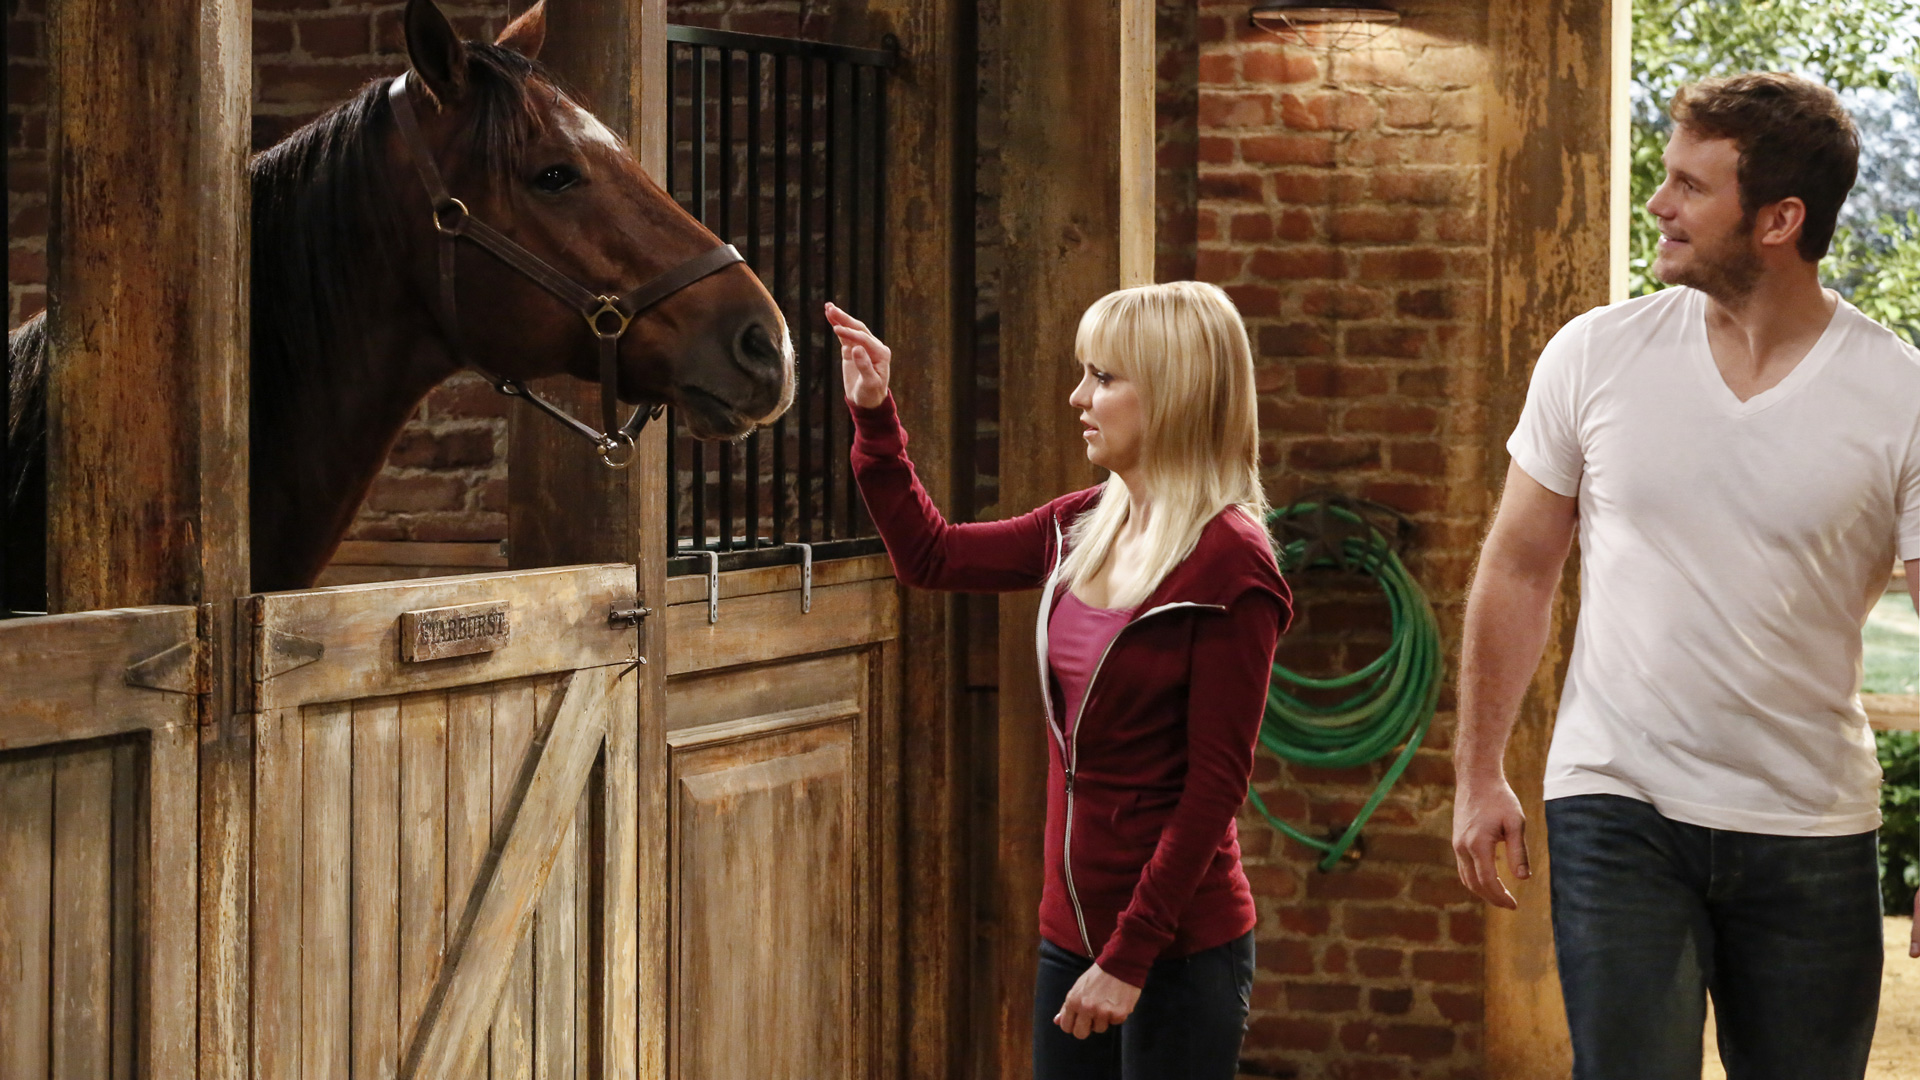 Christy heads to the stables to visit her new crush and his mane squeeze.